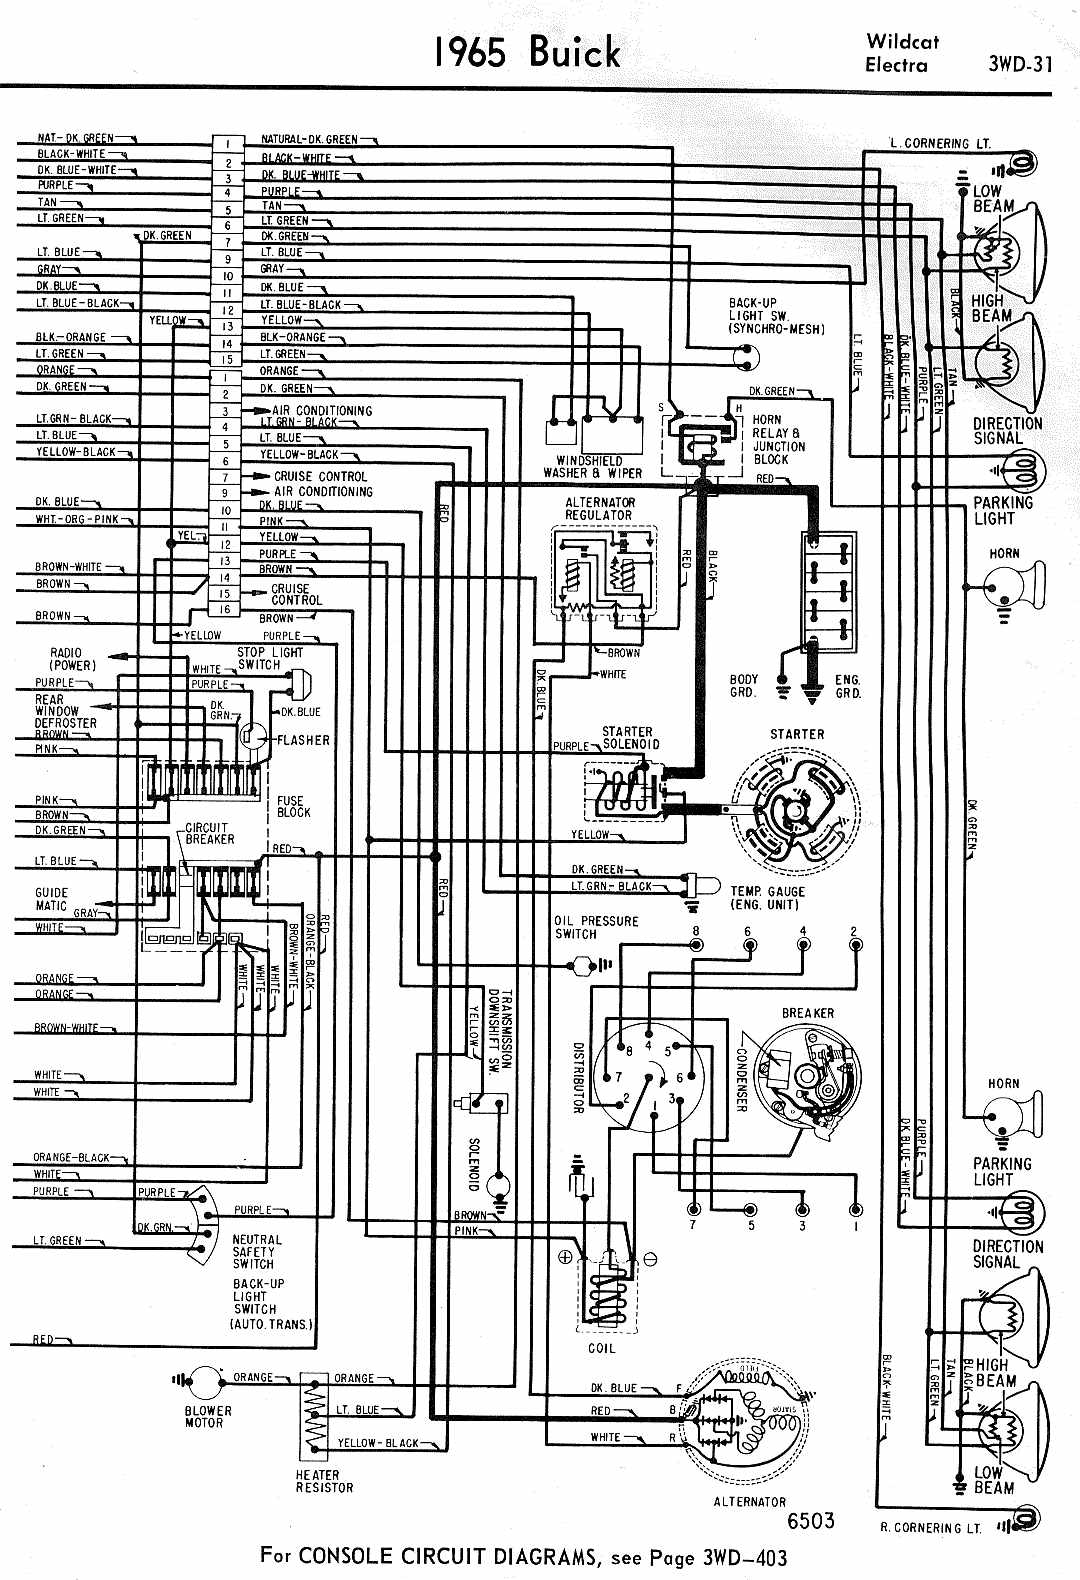 1991 Buick Skylark Wiring Diagram Further Lesabre Electrical 1964 Riviera Trusted Diagrams U2022 Rh Caribbeanblues Co Transmission Troubleshooting